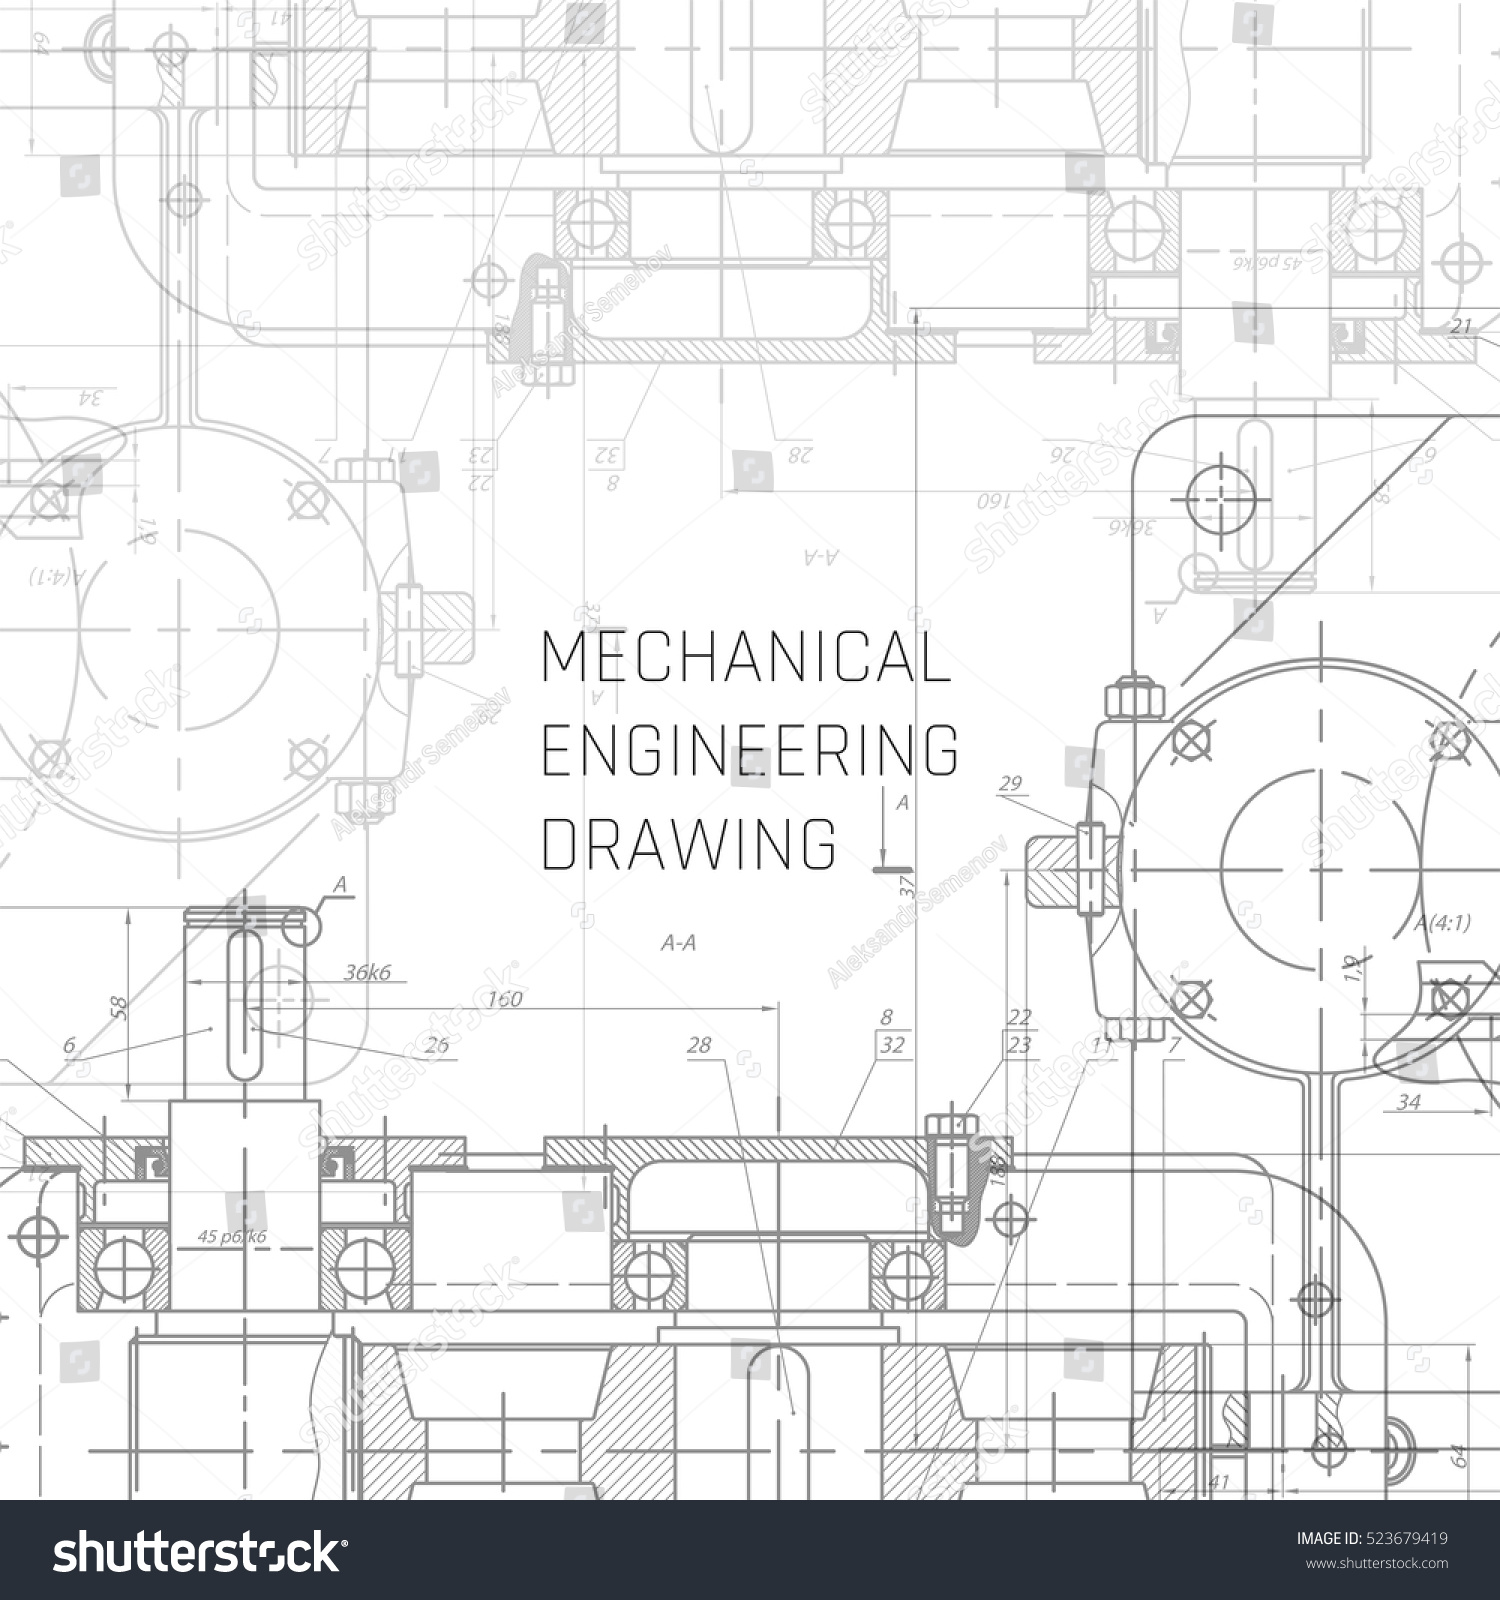 Mechanical engineering drawing engineering drawing for Engineering blueprints